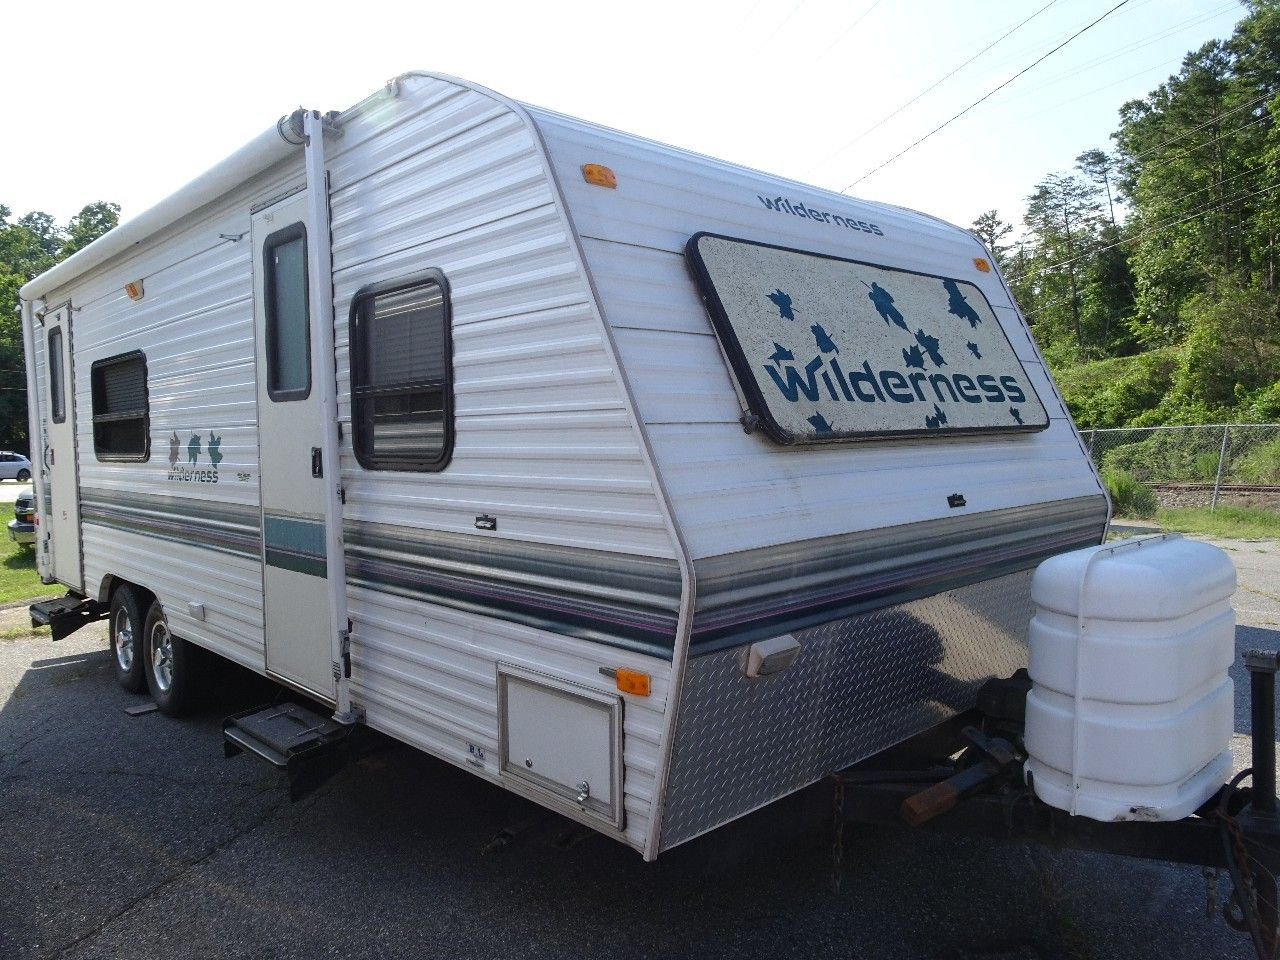 Check Out This 1997 Wilderness 25ly Listing In Hickory Nc 28601 On Rvtrader Com It Is A Travel Trailer And Is For Sale At 7995 Rvs For Sale Rvs Rv Trader